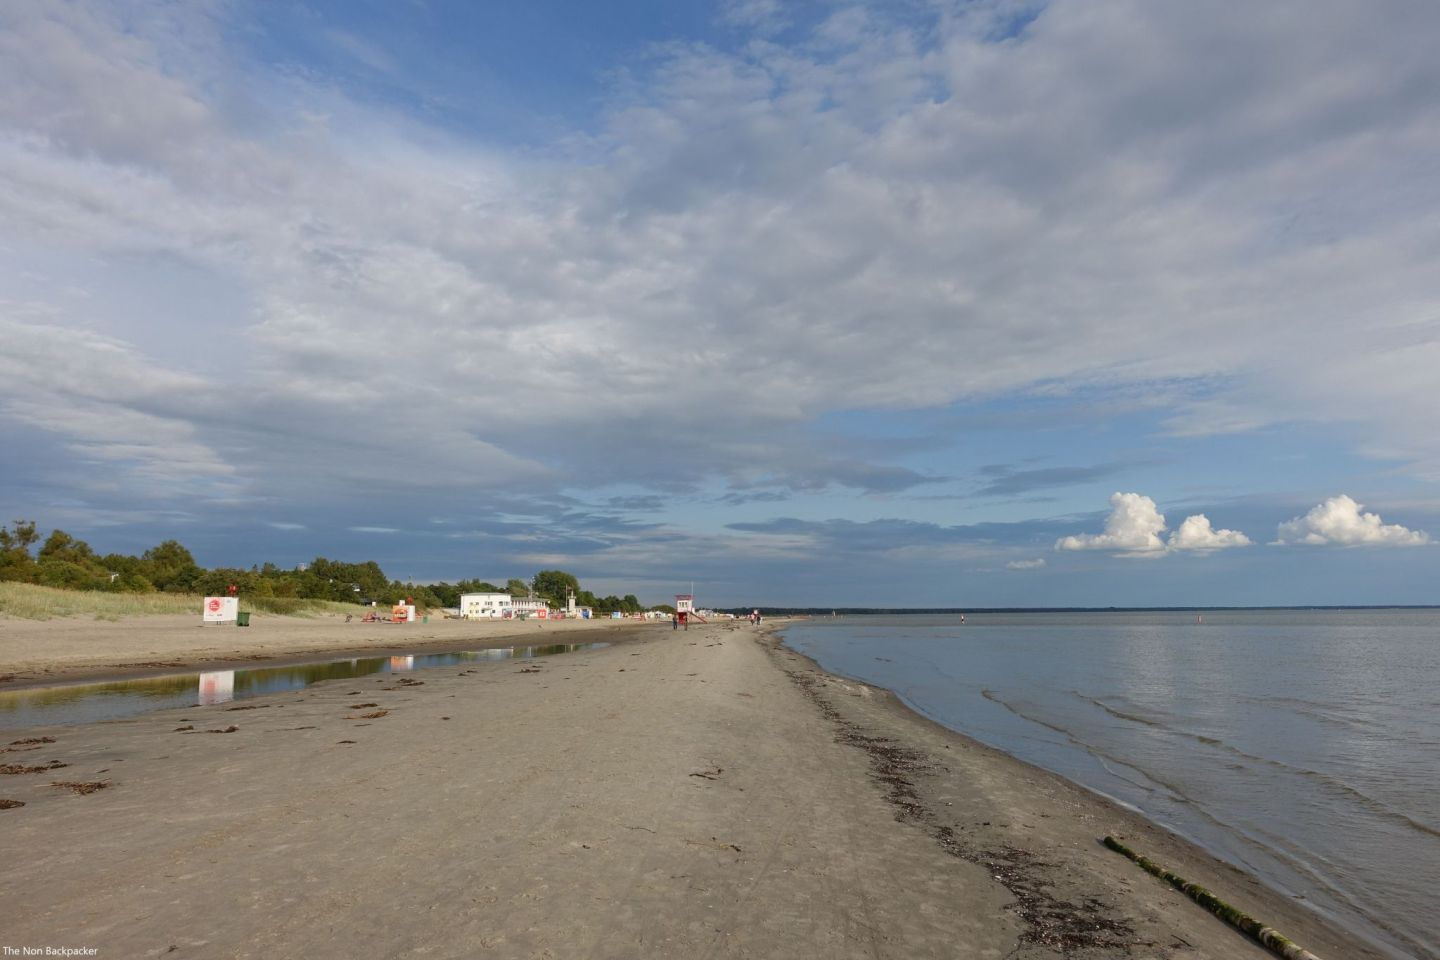 An Estonian Beach Break